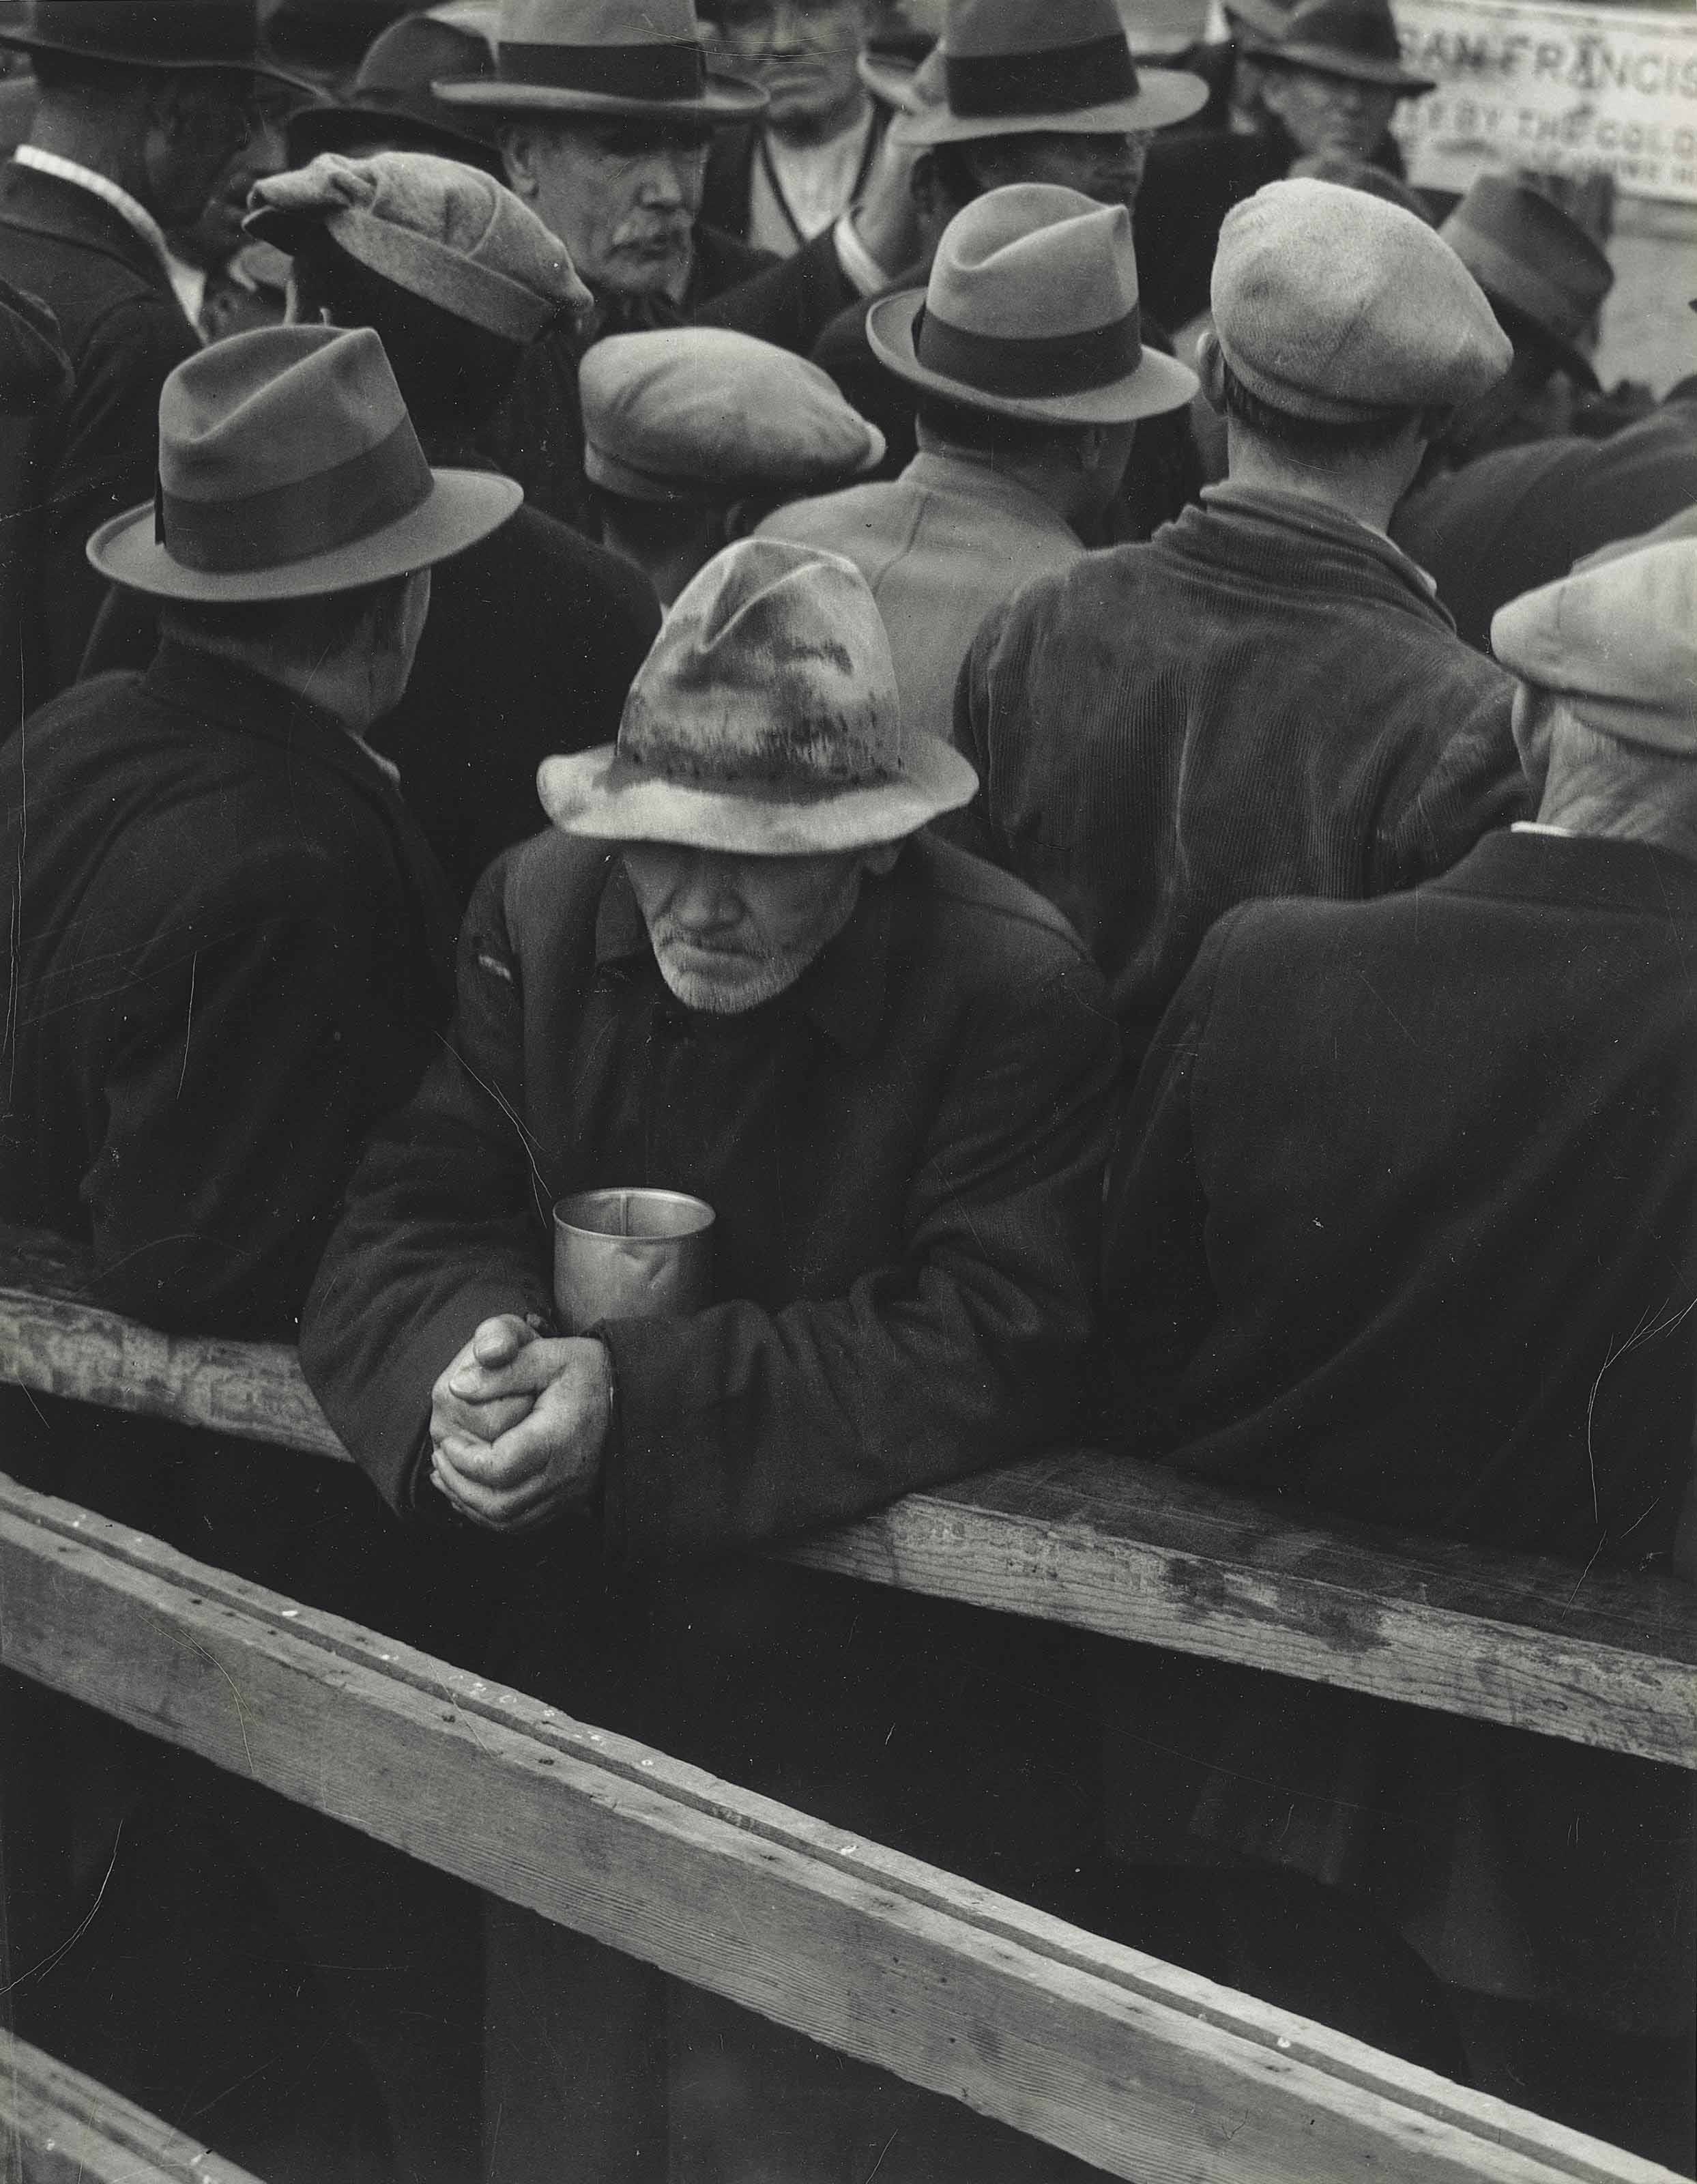 White Angel Breadline, 1933